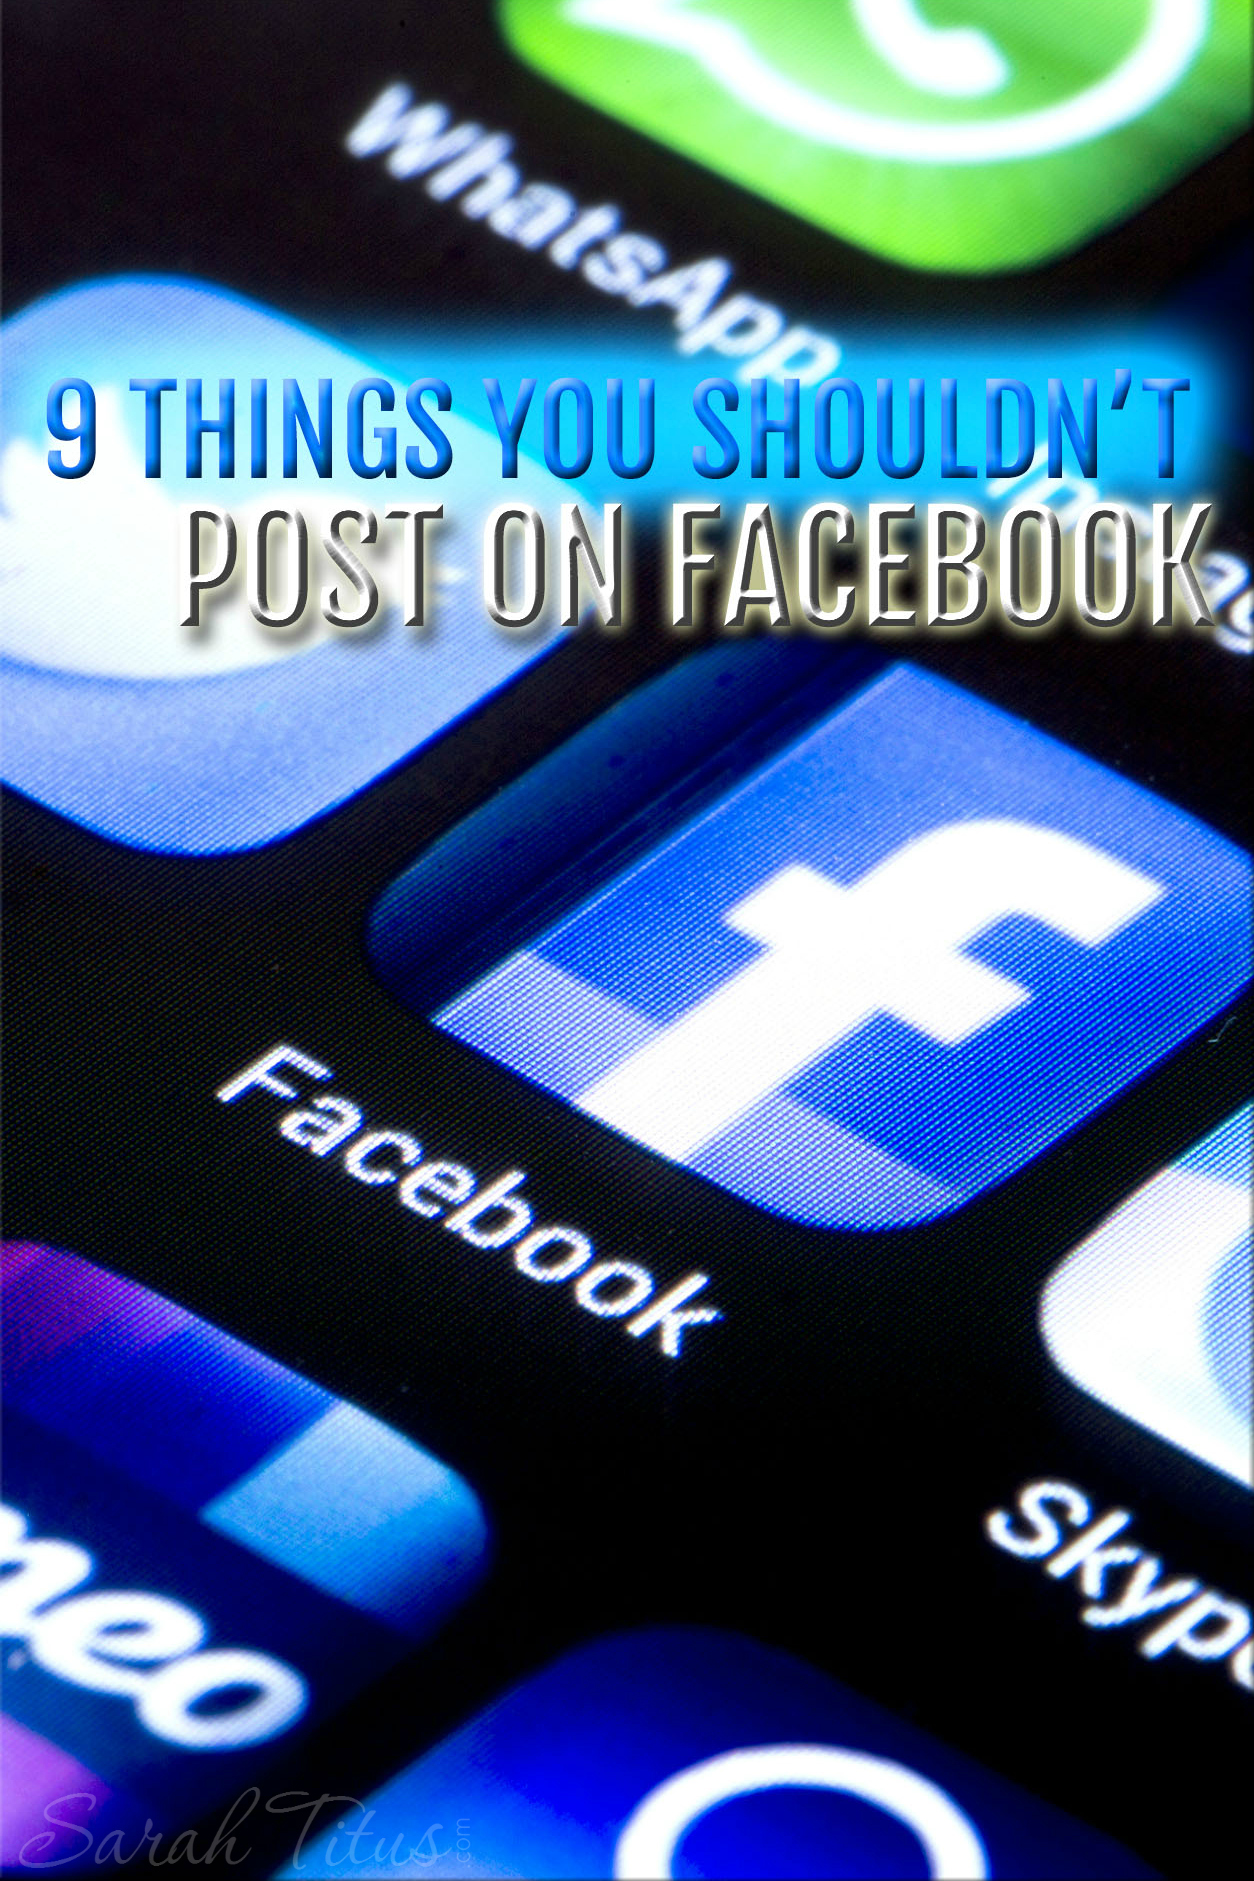 I bet you've posted at least one of these 9 things you shouldn't post on Facebook. Find out what they are and why it's so bad to say them!